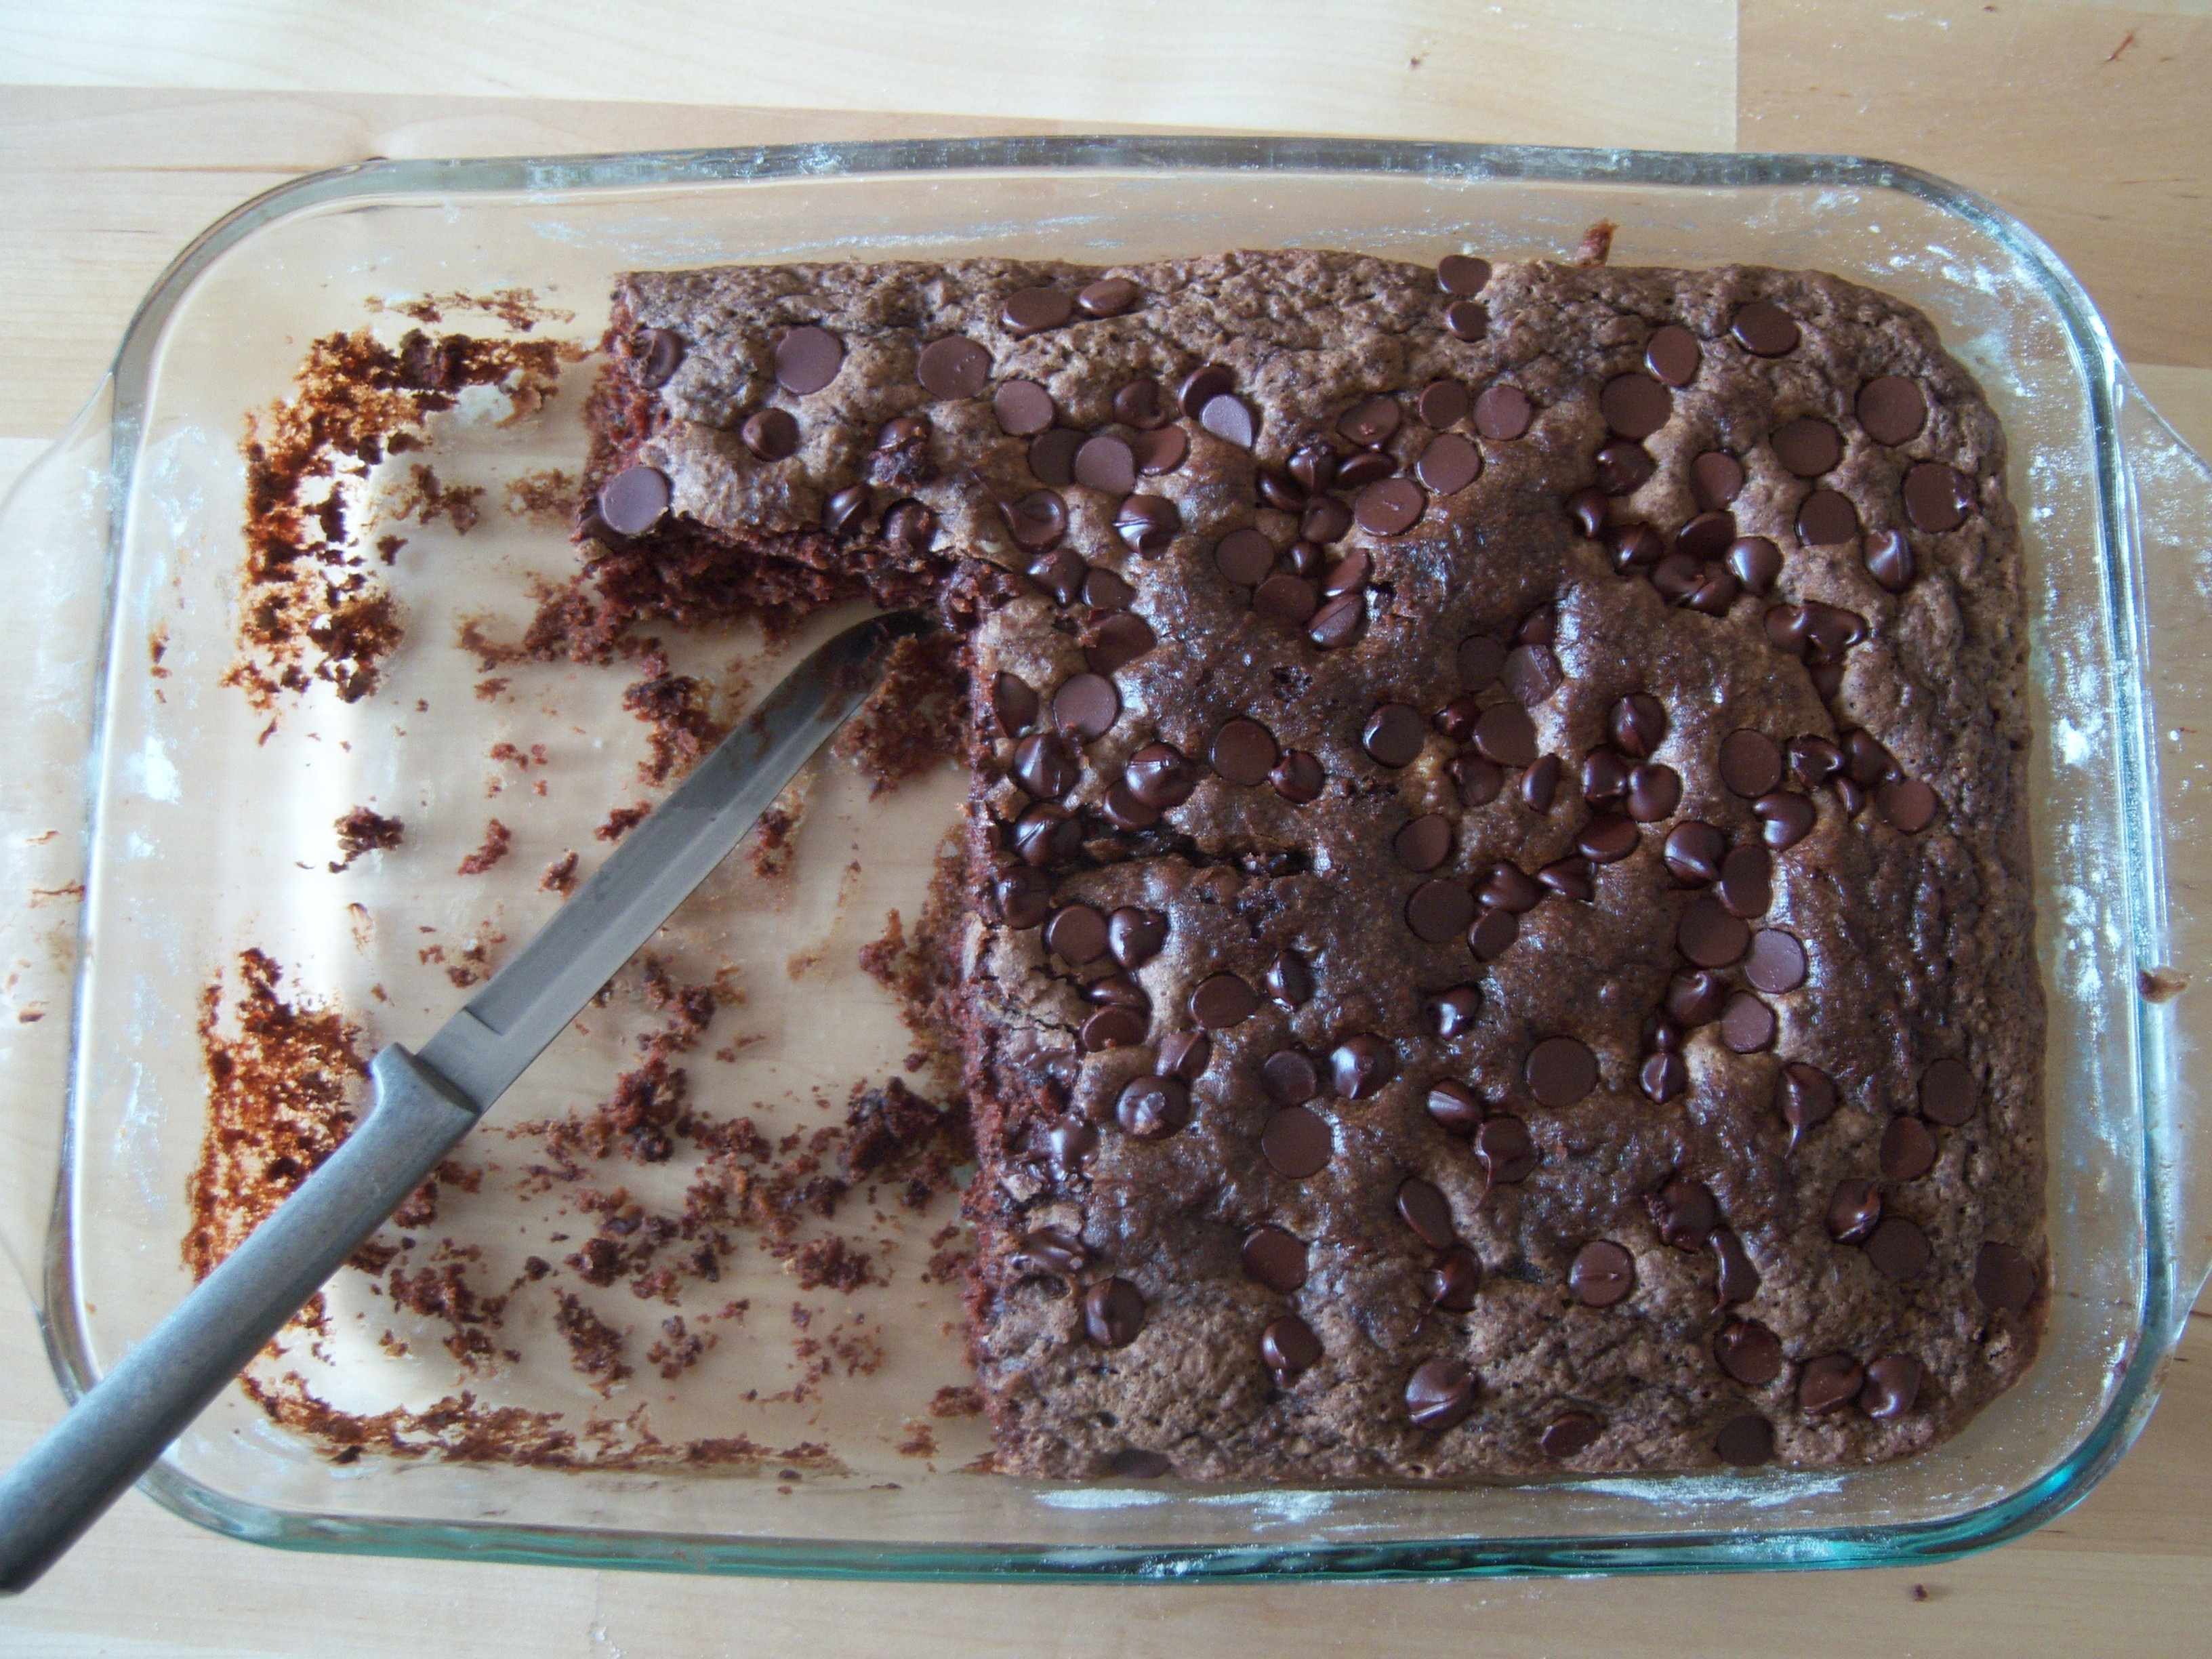 chocolate-cake-top.jpg